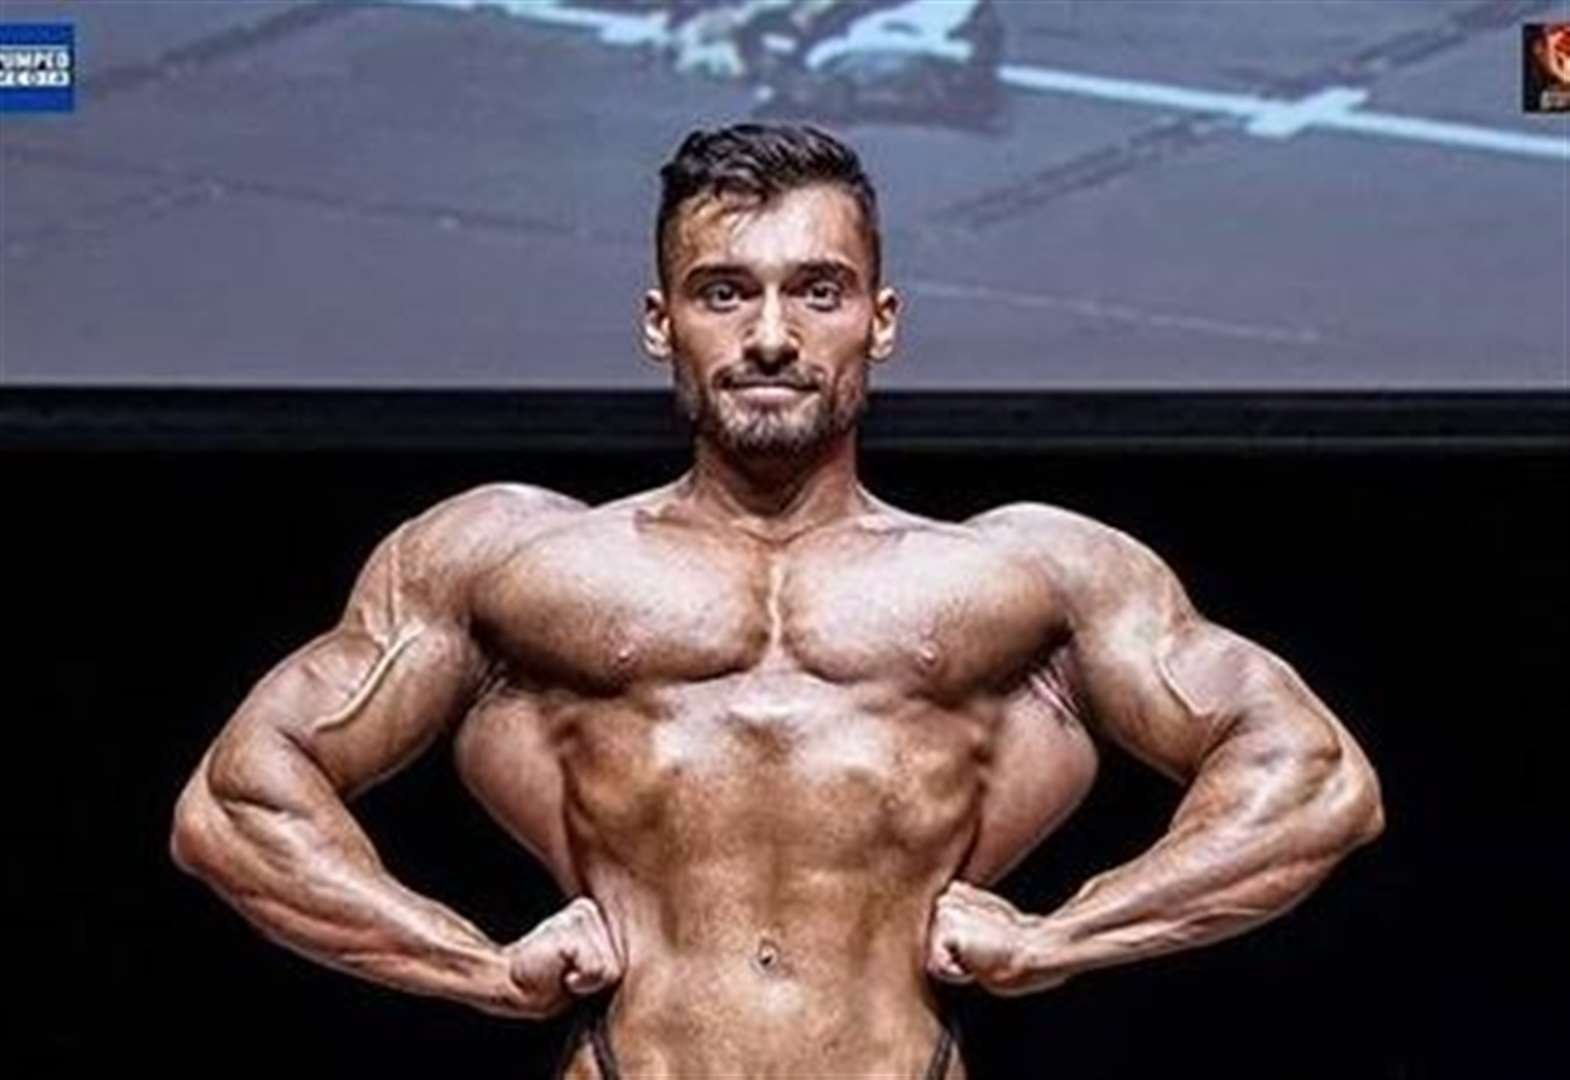 Gym instructor wins Mr Universe title